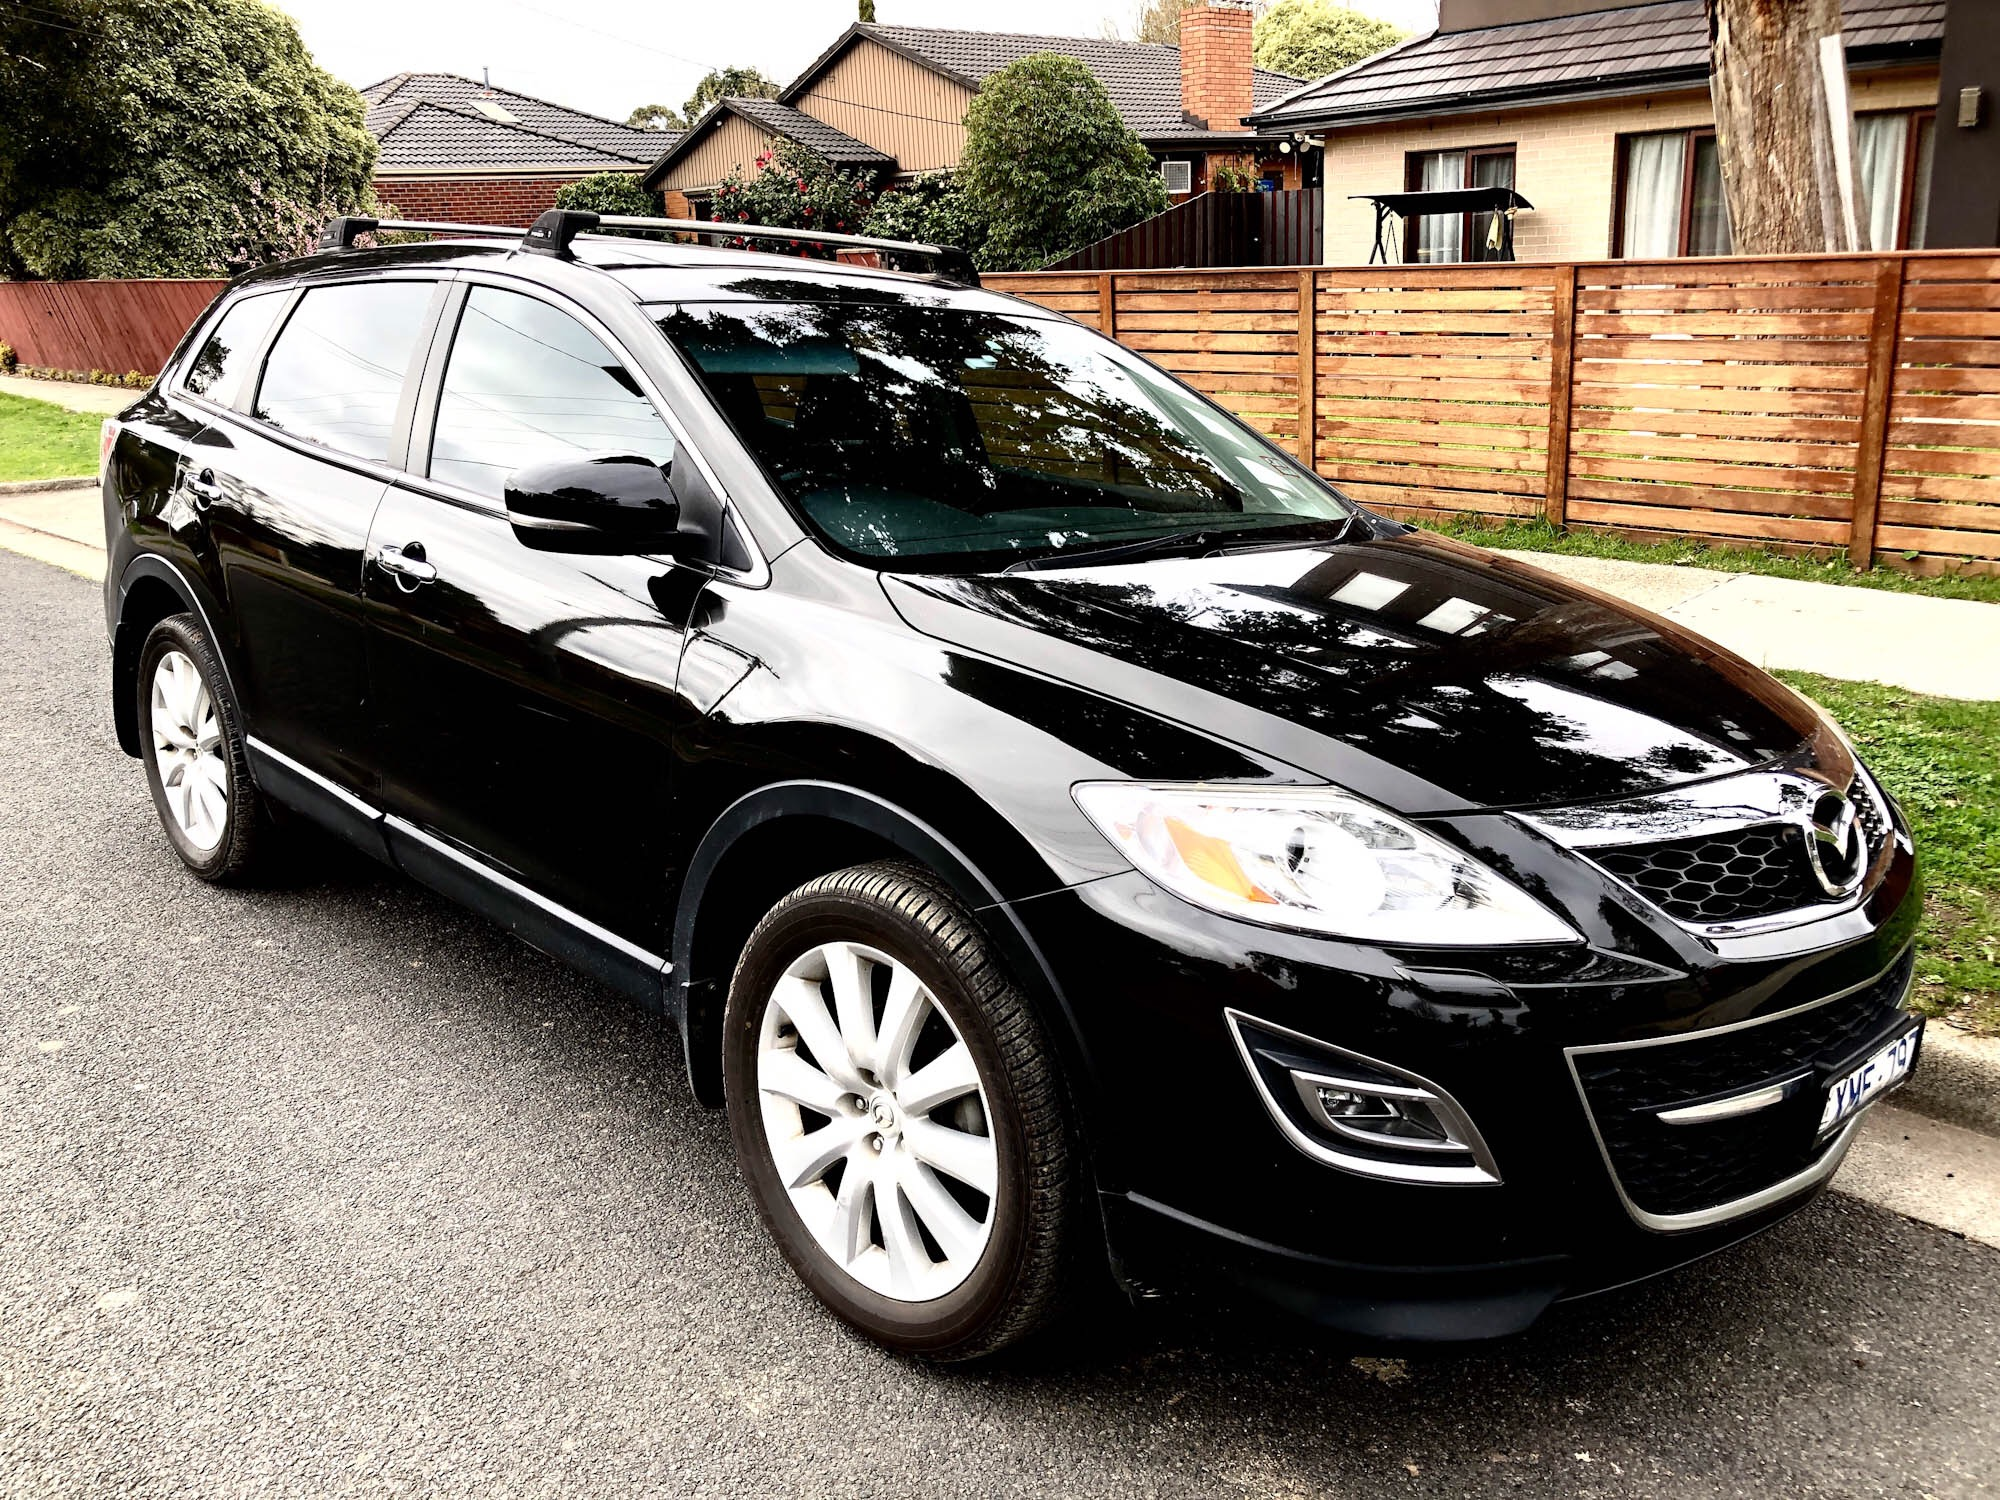 Picture of Darion's 2009 Mazda CX-9